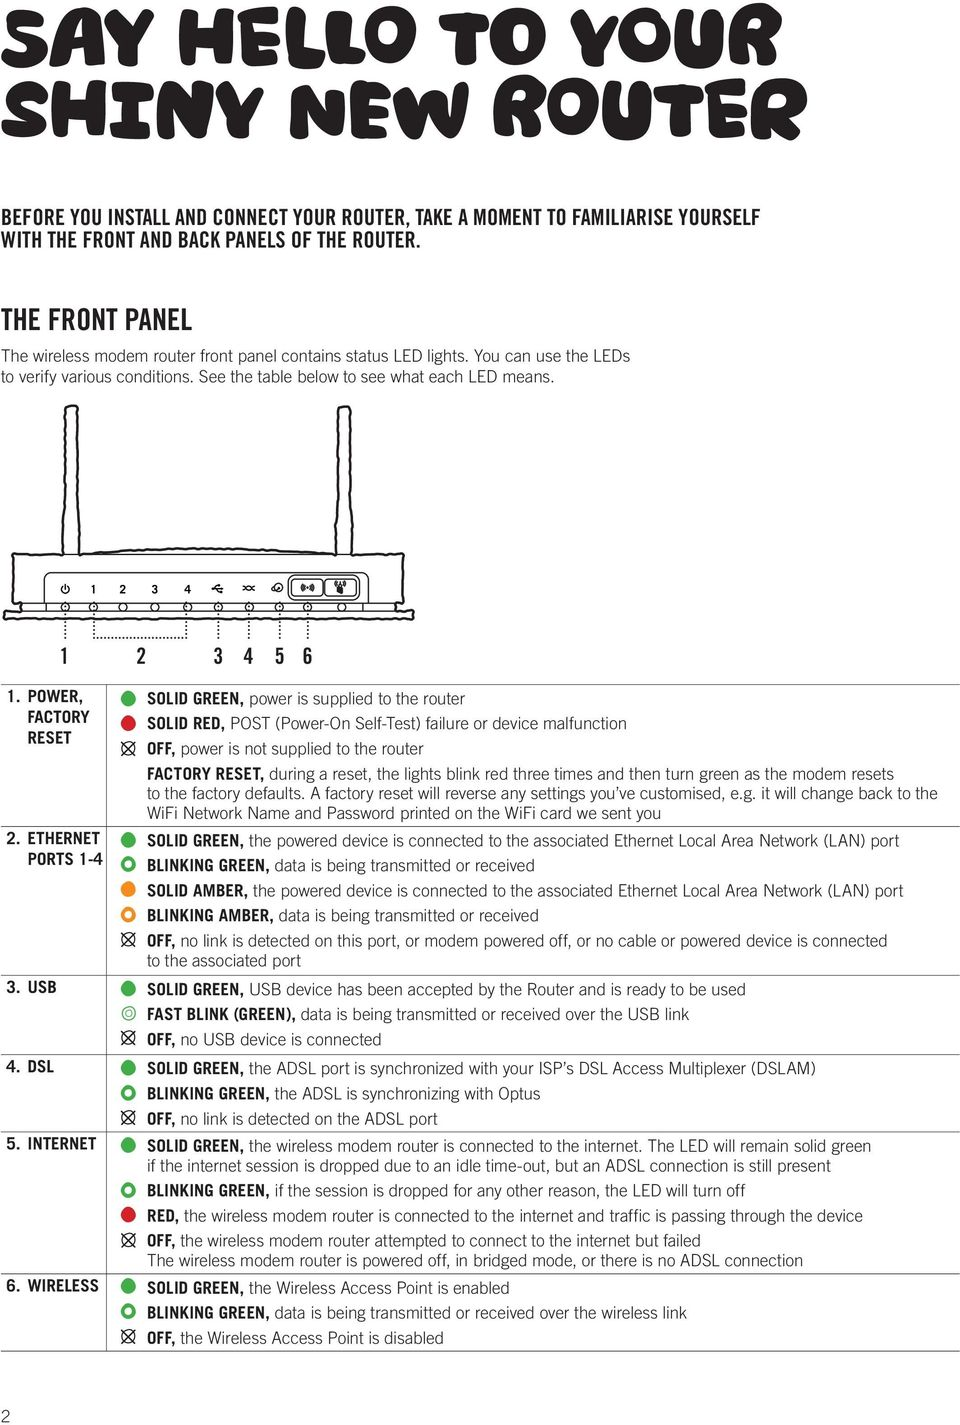 IN THIS GUIDE YOU WILL LEARN HOW TO GET YOUR ROUTER GOING IN